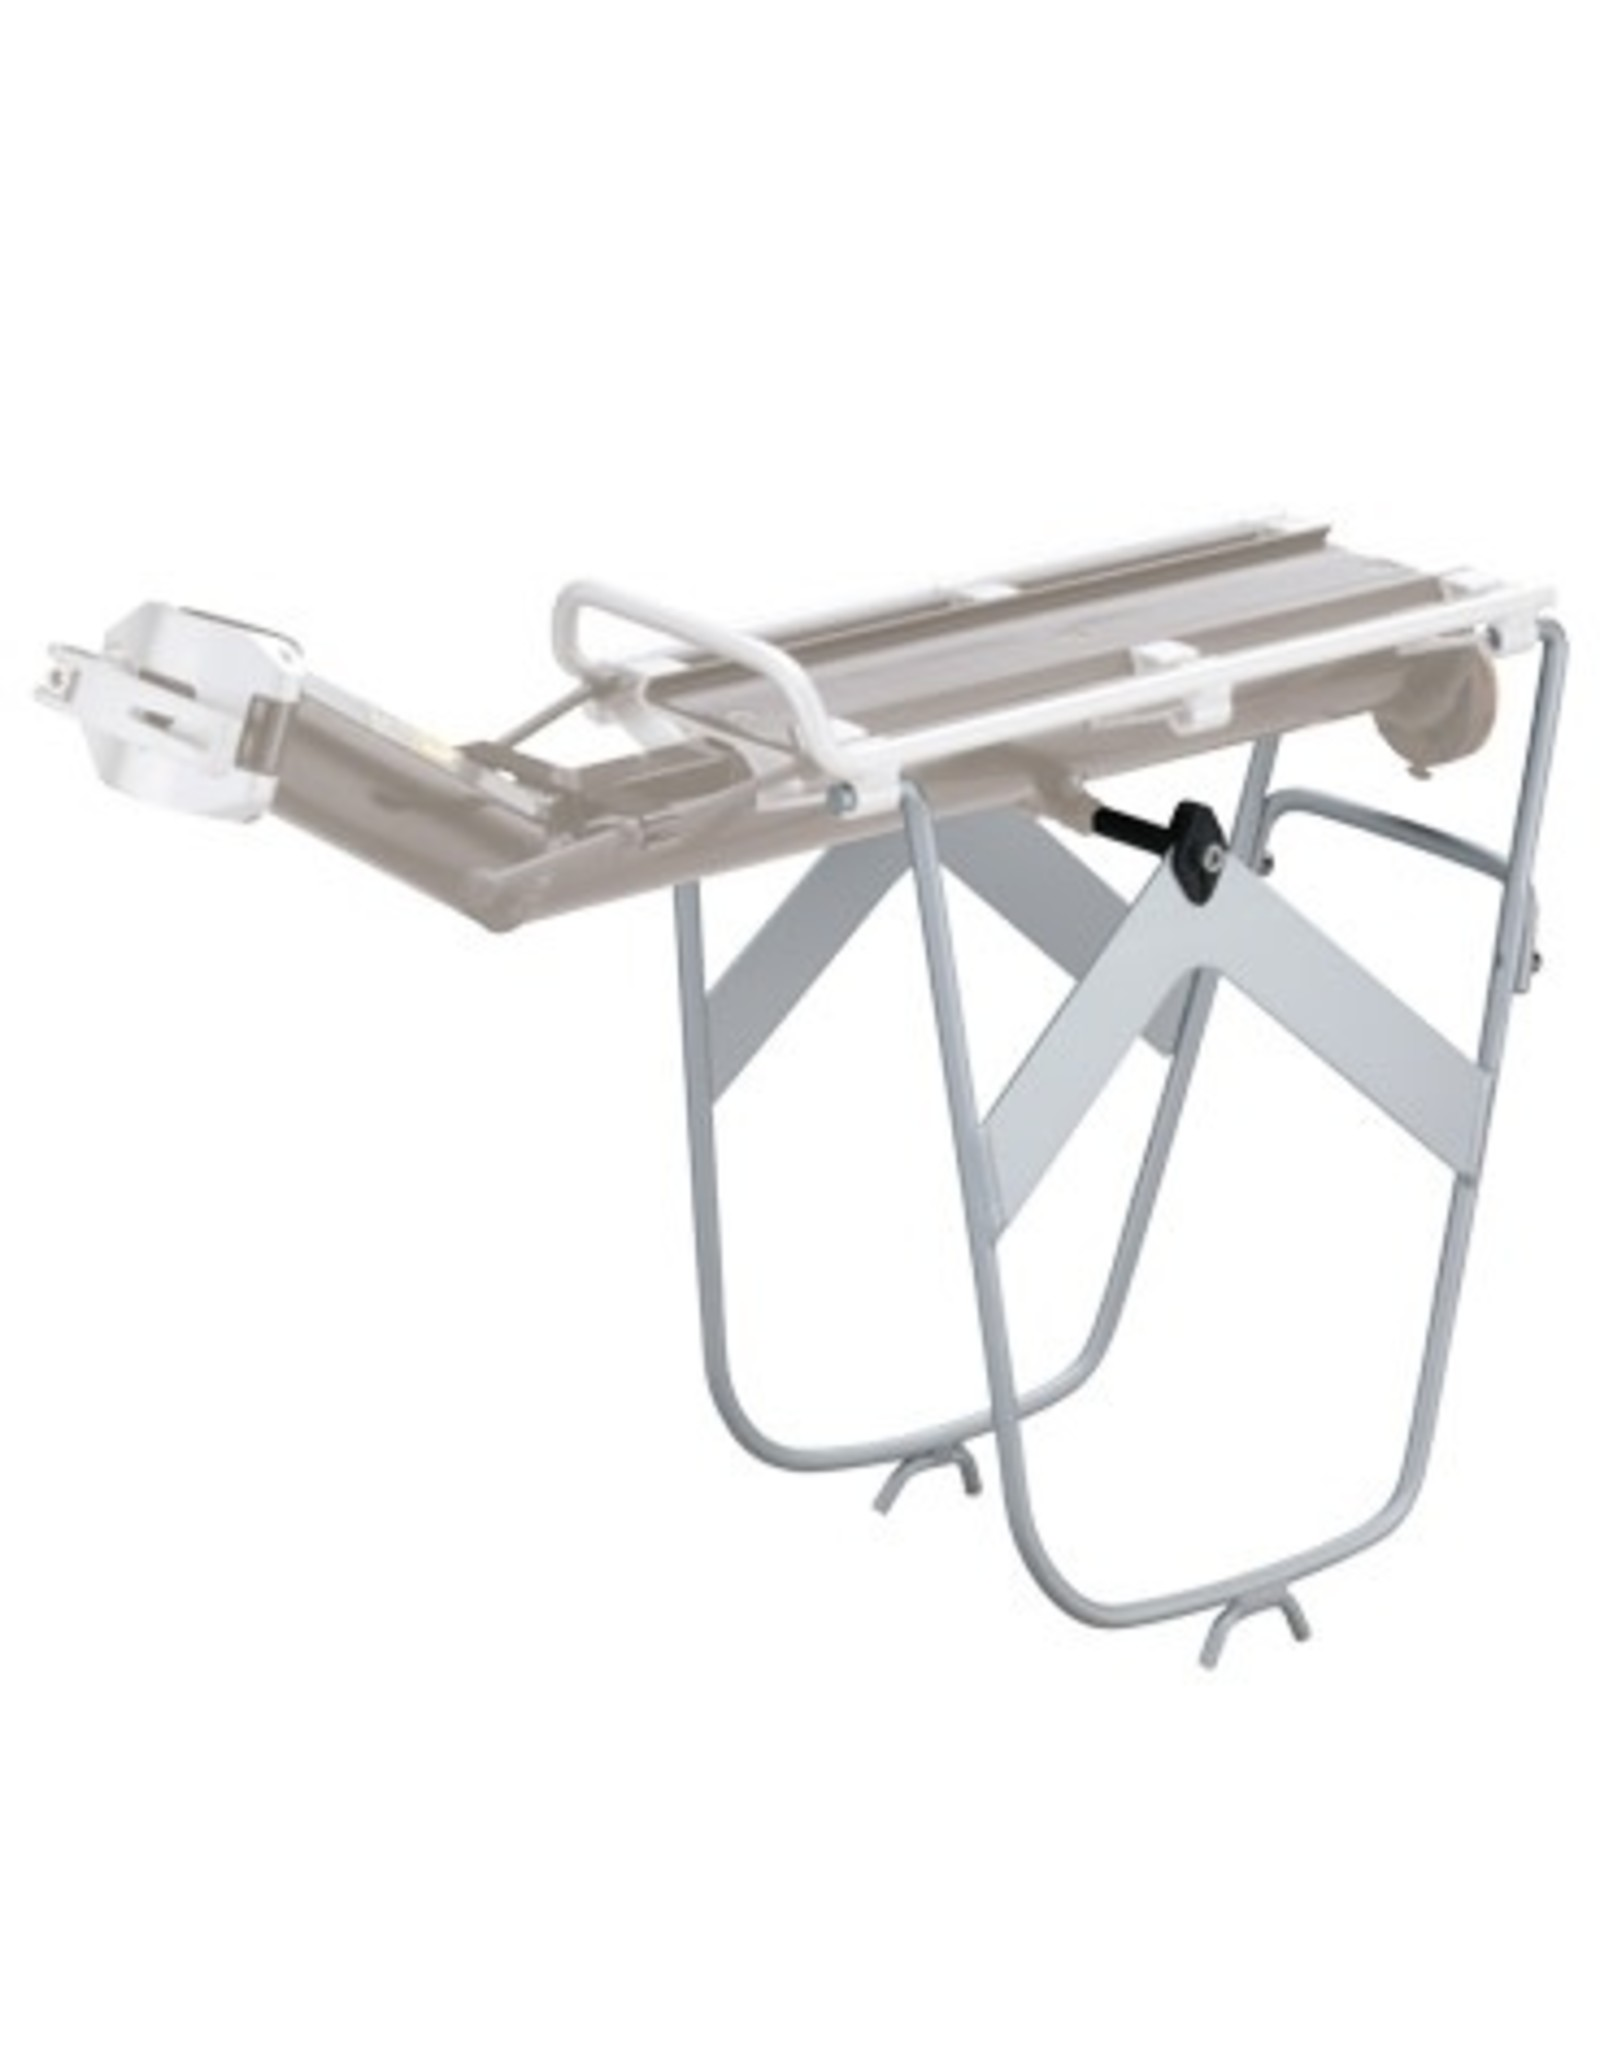 Topeak Rack Topeak MTX Dual Side Frame for MTX BeamRack Series